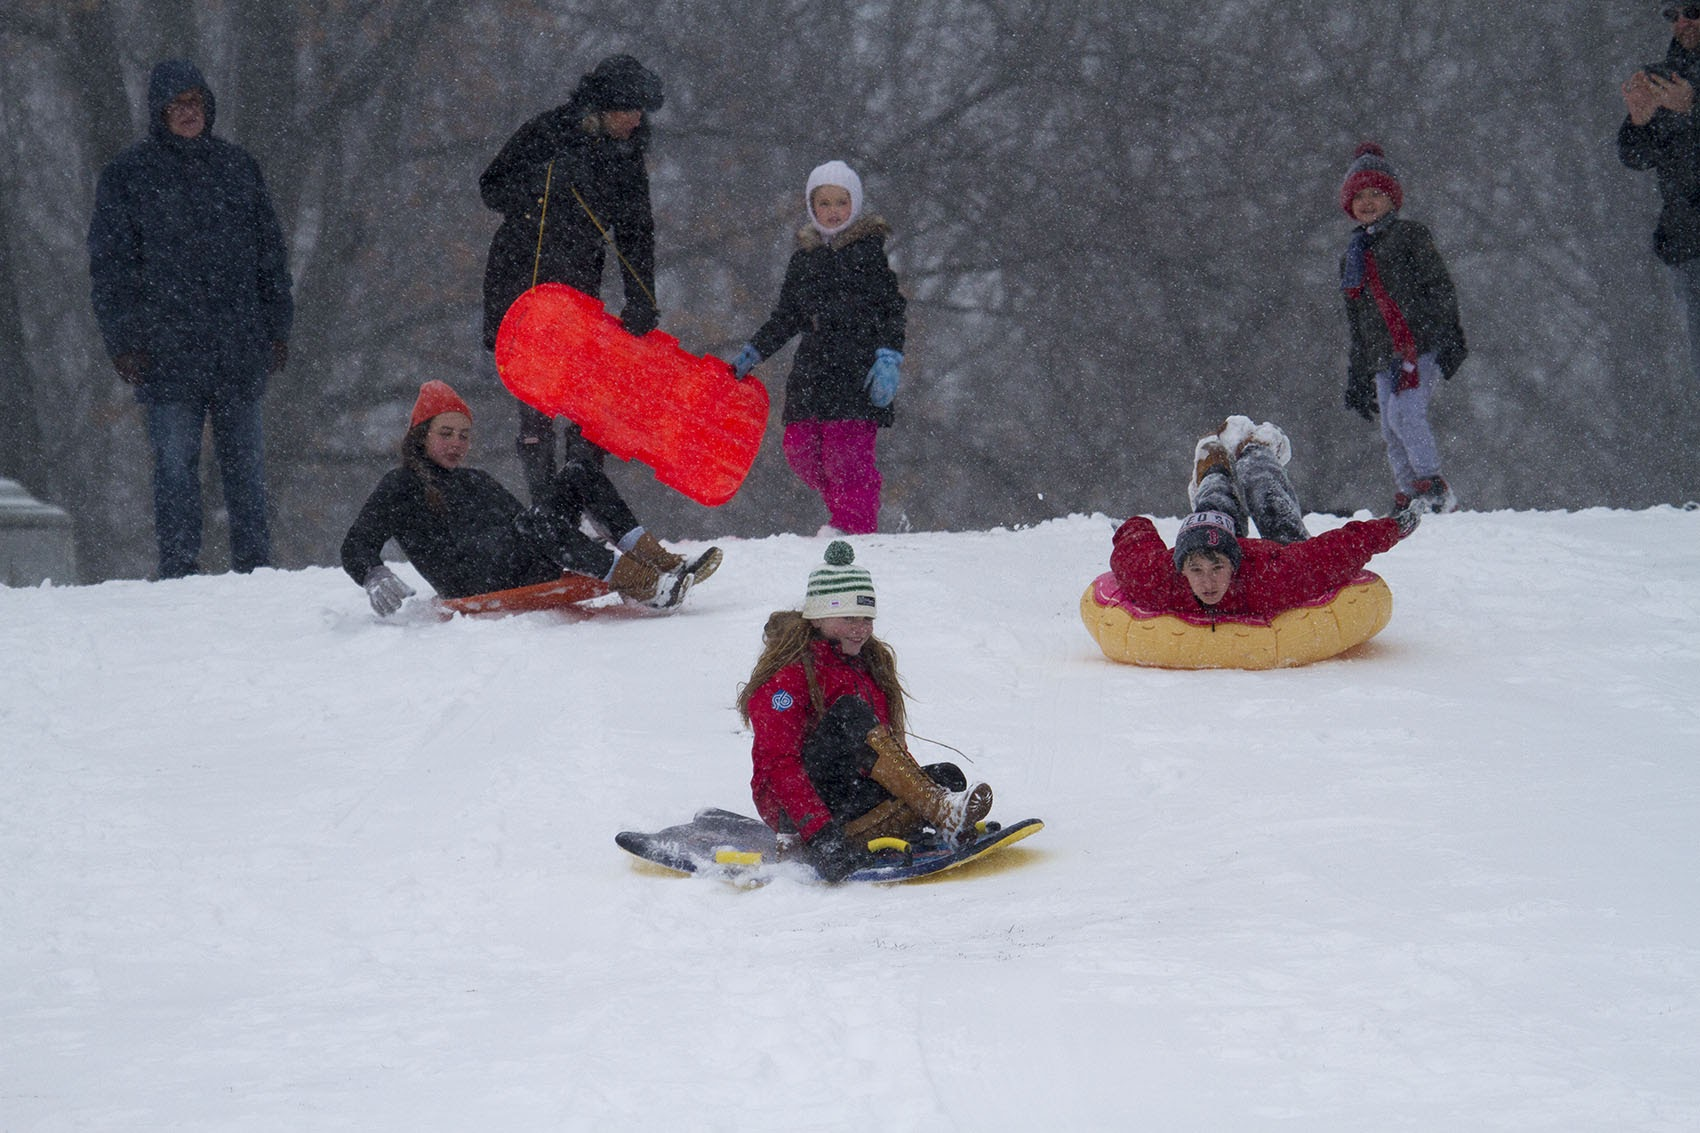 Kids sled down the hill at Boston Common during a snowstorm in 2017. (Jesse Costa/WBUR)